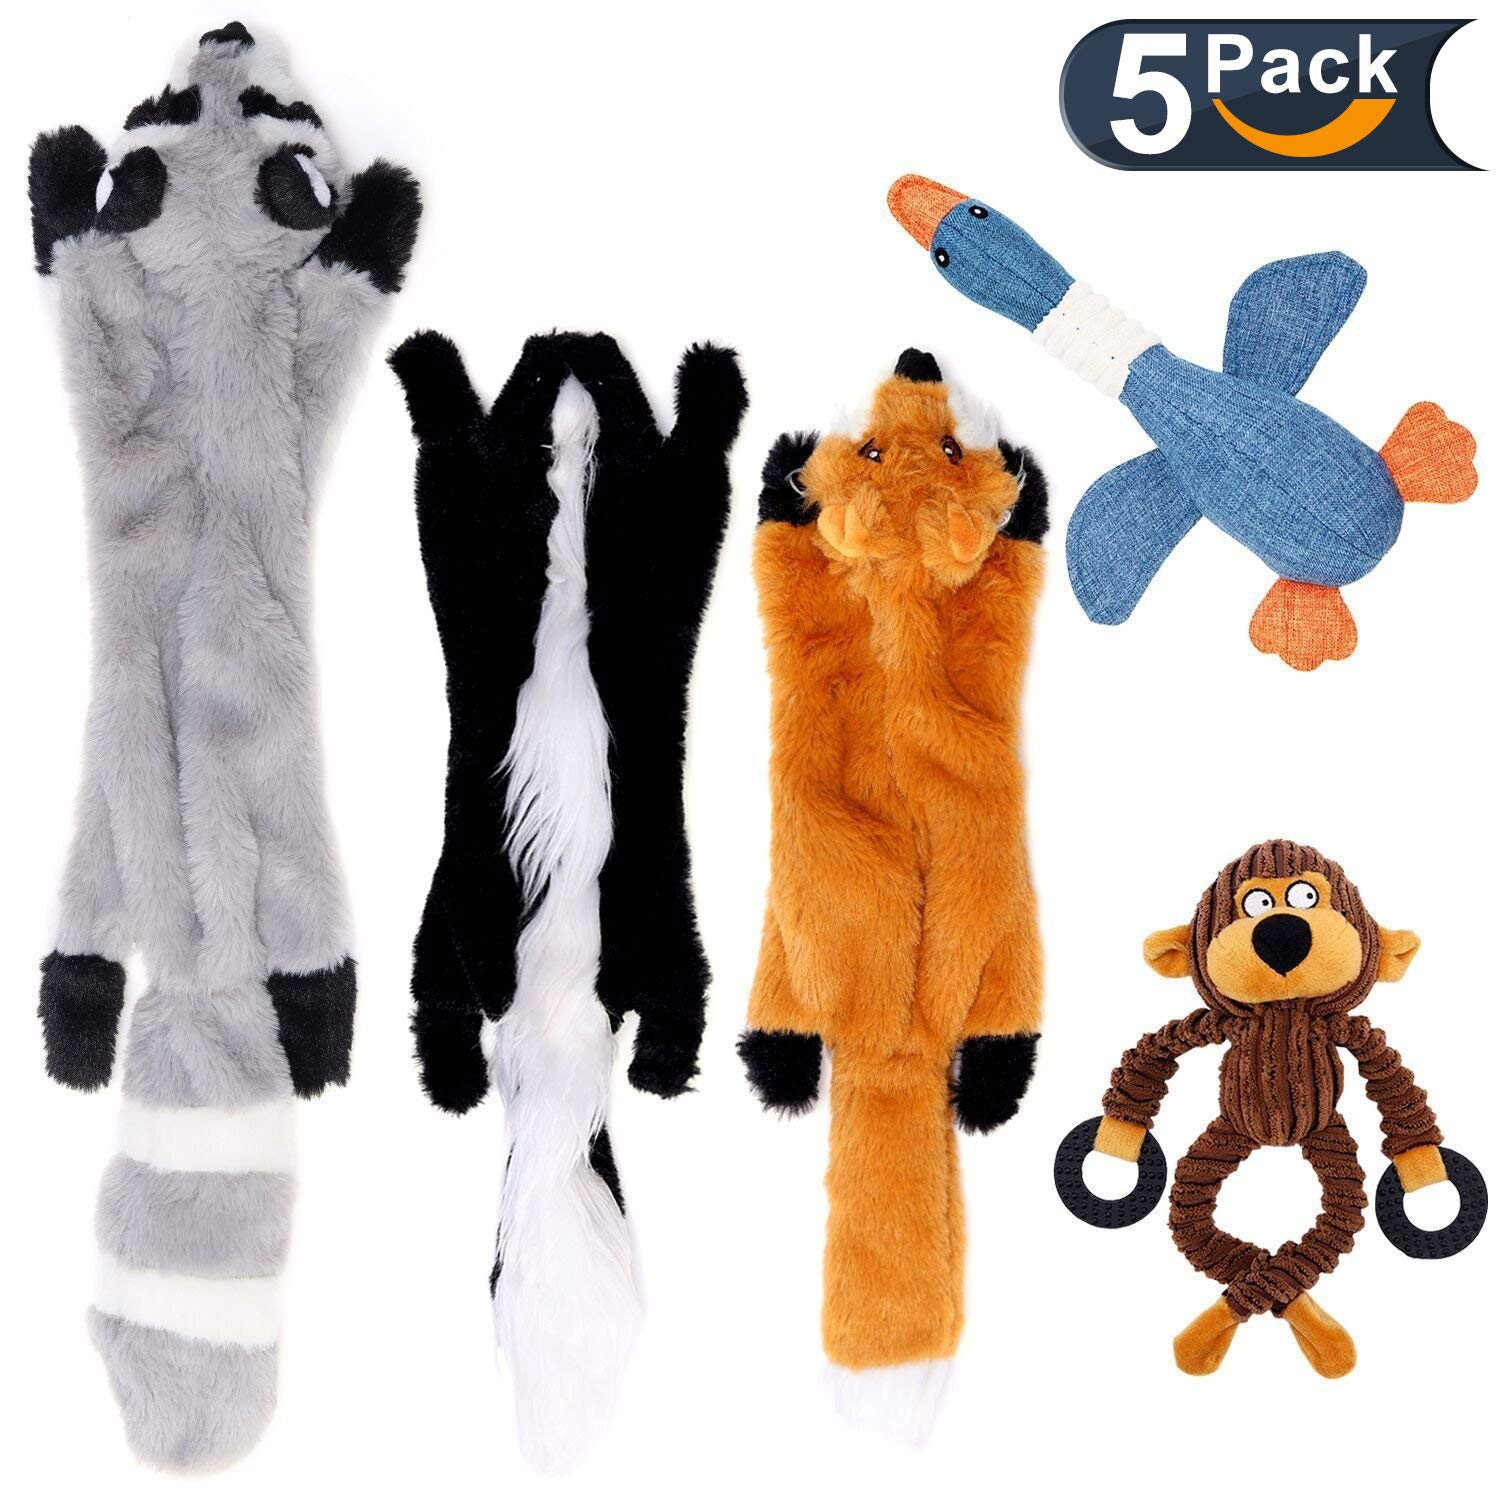 LOVEKONG Stuffingless Dog Toys, No Stuffing Dog Toys of Raccoon Fox and Skunk, Plush Squeaky Toys for Large Medium Small Dogs, Plush Animal Chew Dog Toys 5 Pack